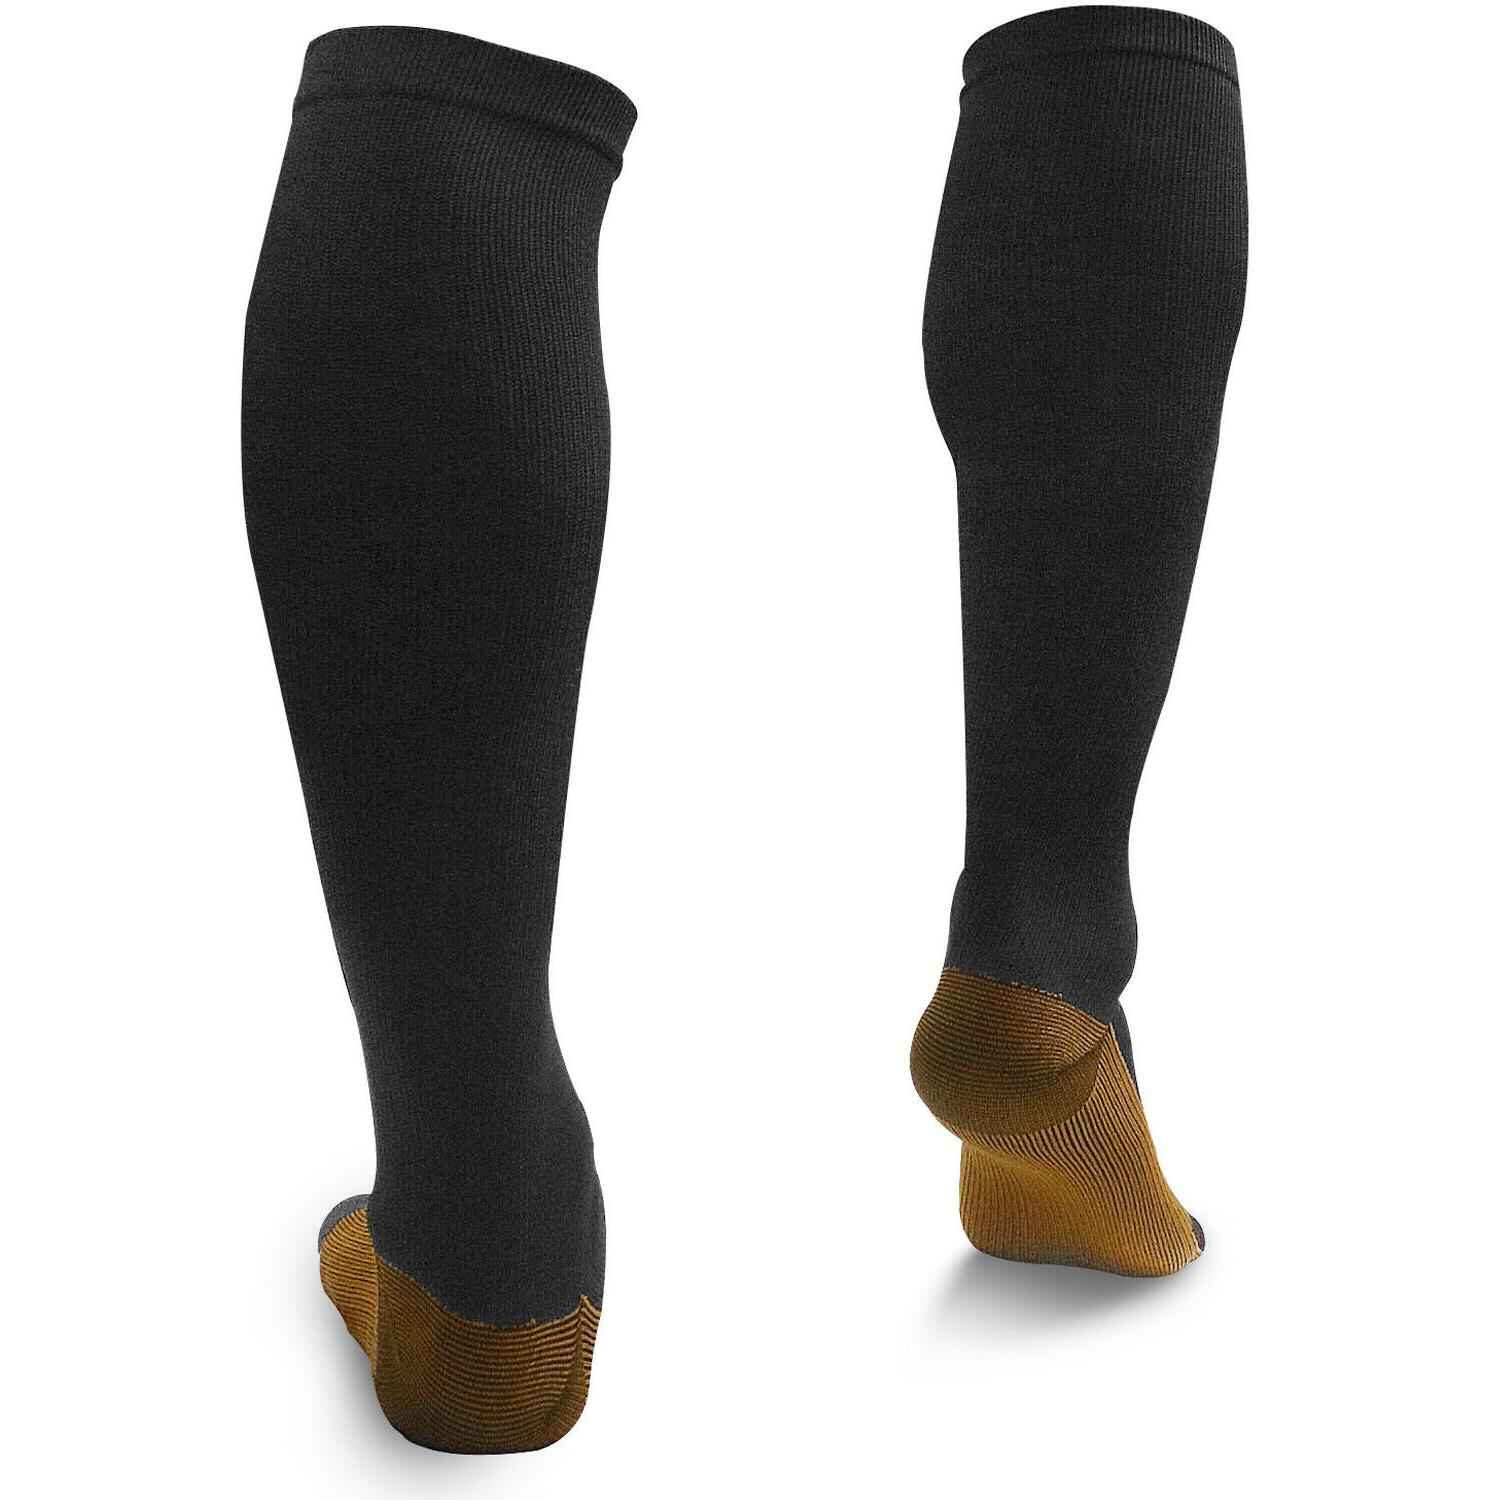 1to5 Copper Socks Calf Foot Support